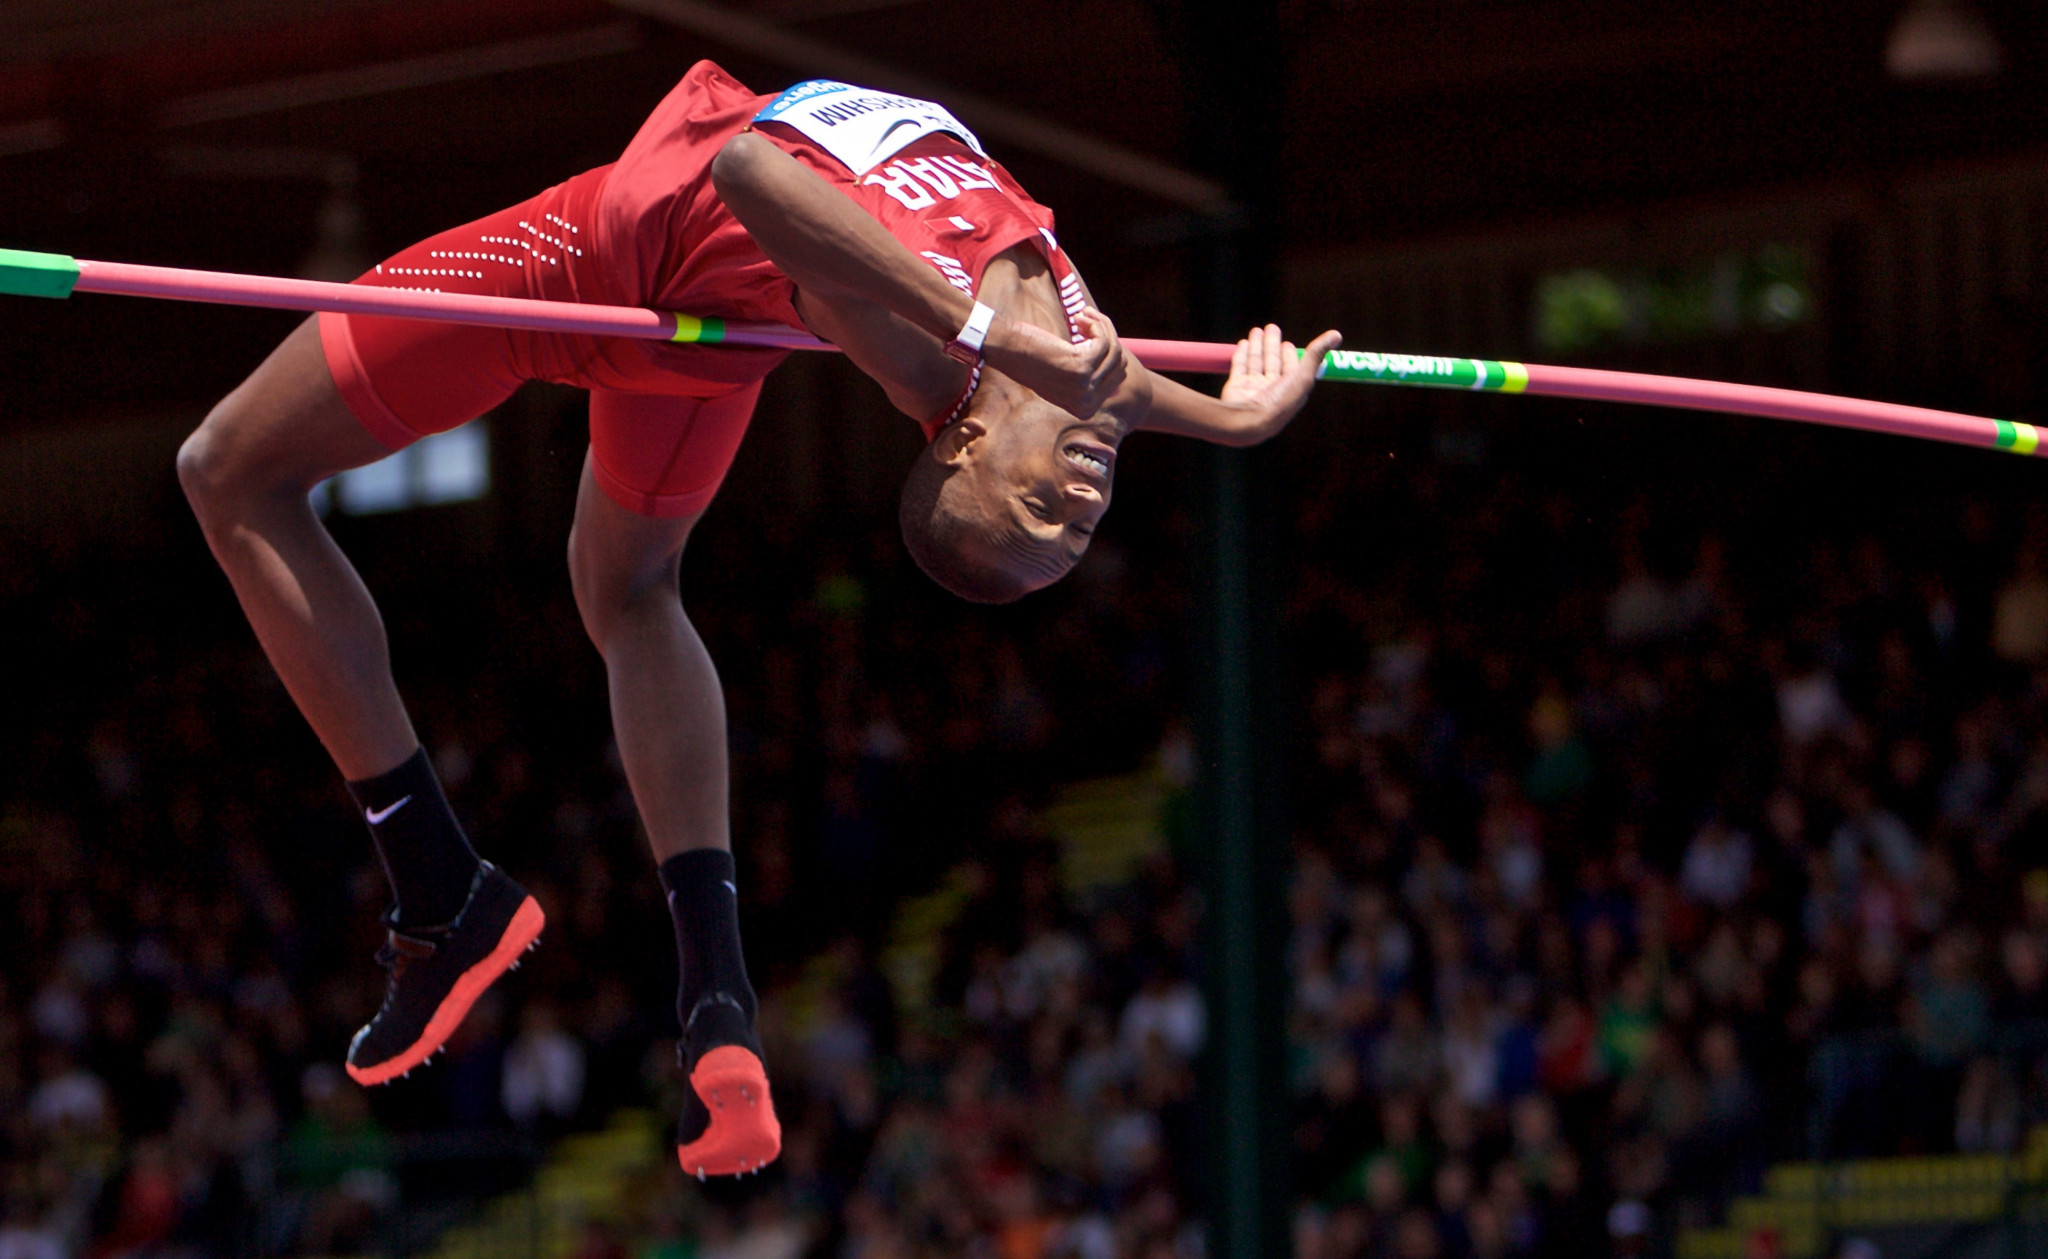 Qatar's star athlete Mutaz Essa Barshim will go for gold on October 4 ©Getty Images